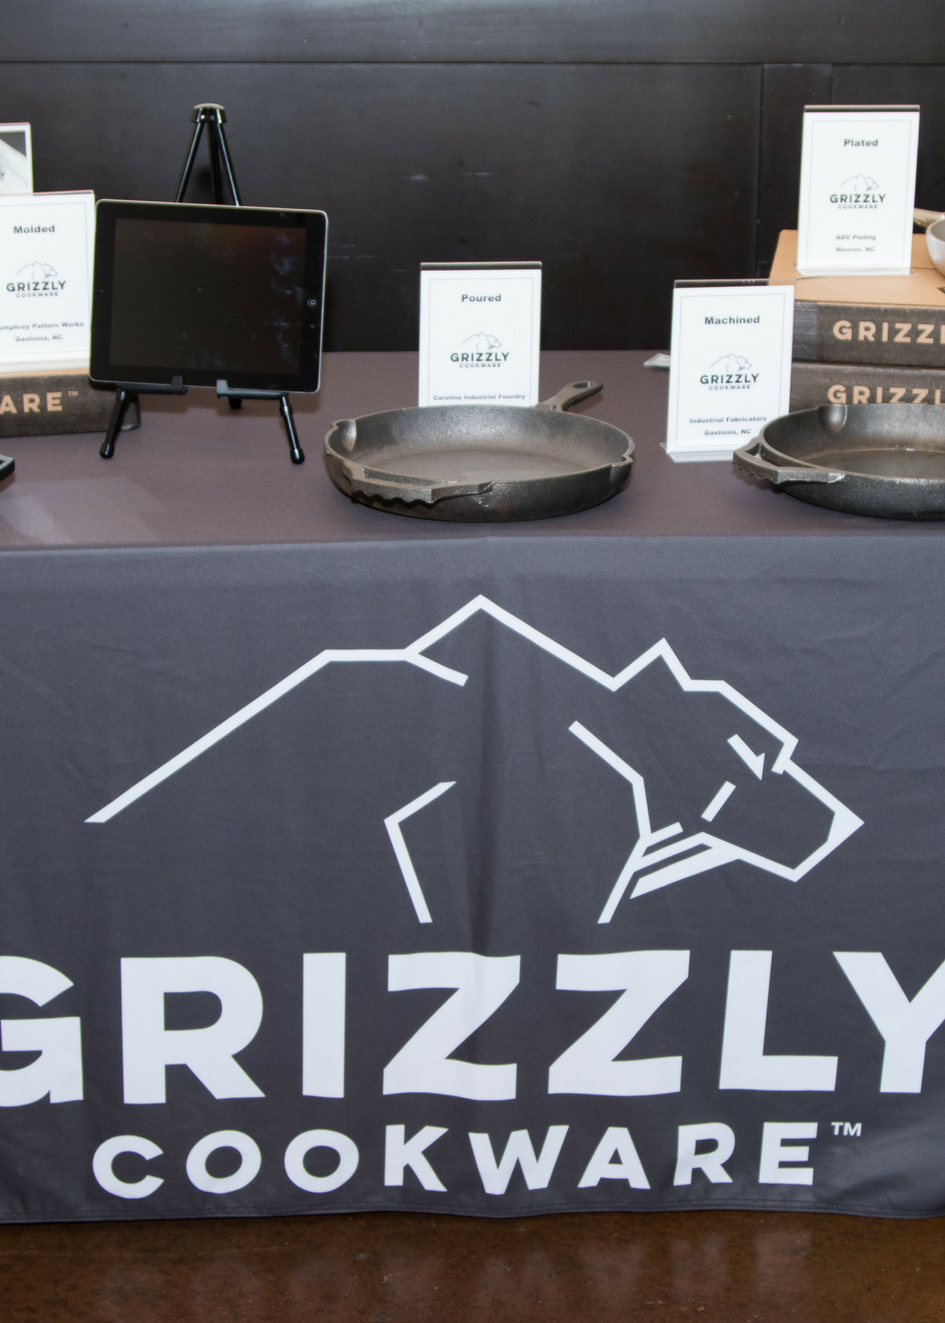 GRIZZLY Cookware Pre-Launch Event